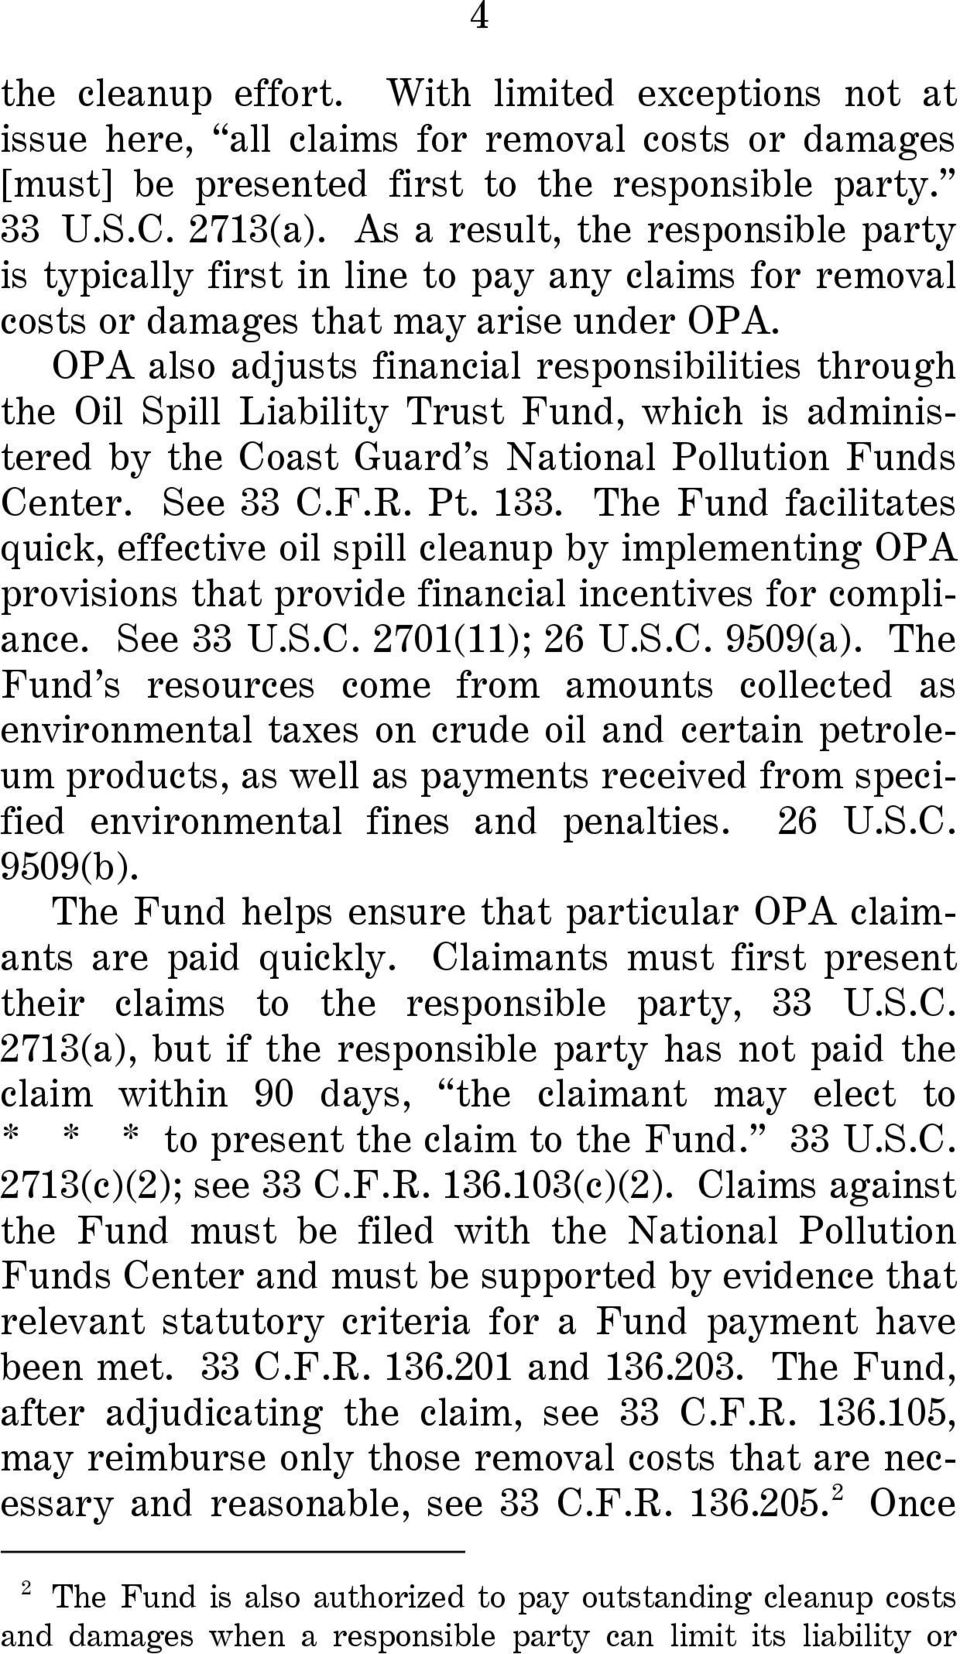 OPA also adjusts financial responsibilities through the Oil Spill Liability Trust Fund, which is administered by the Coast Guard s National Pollution Funds Center. See 33 C.F.R. Pt. 133.